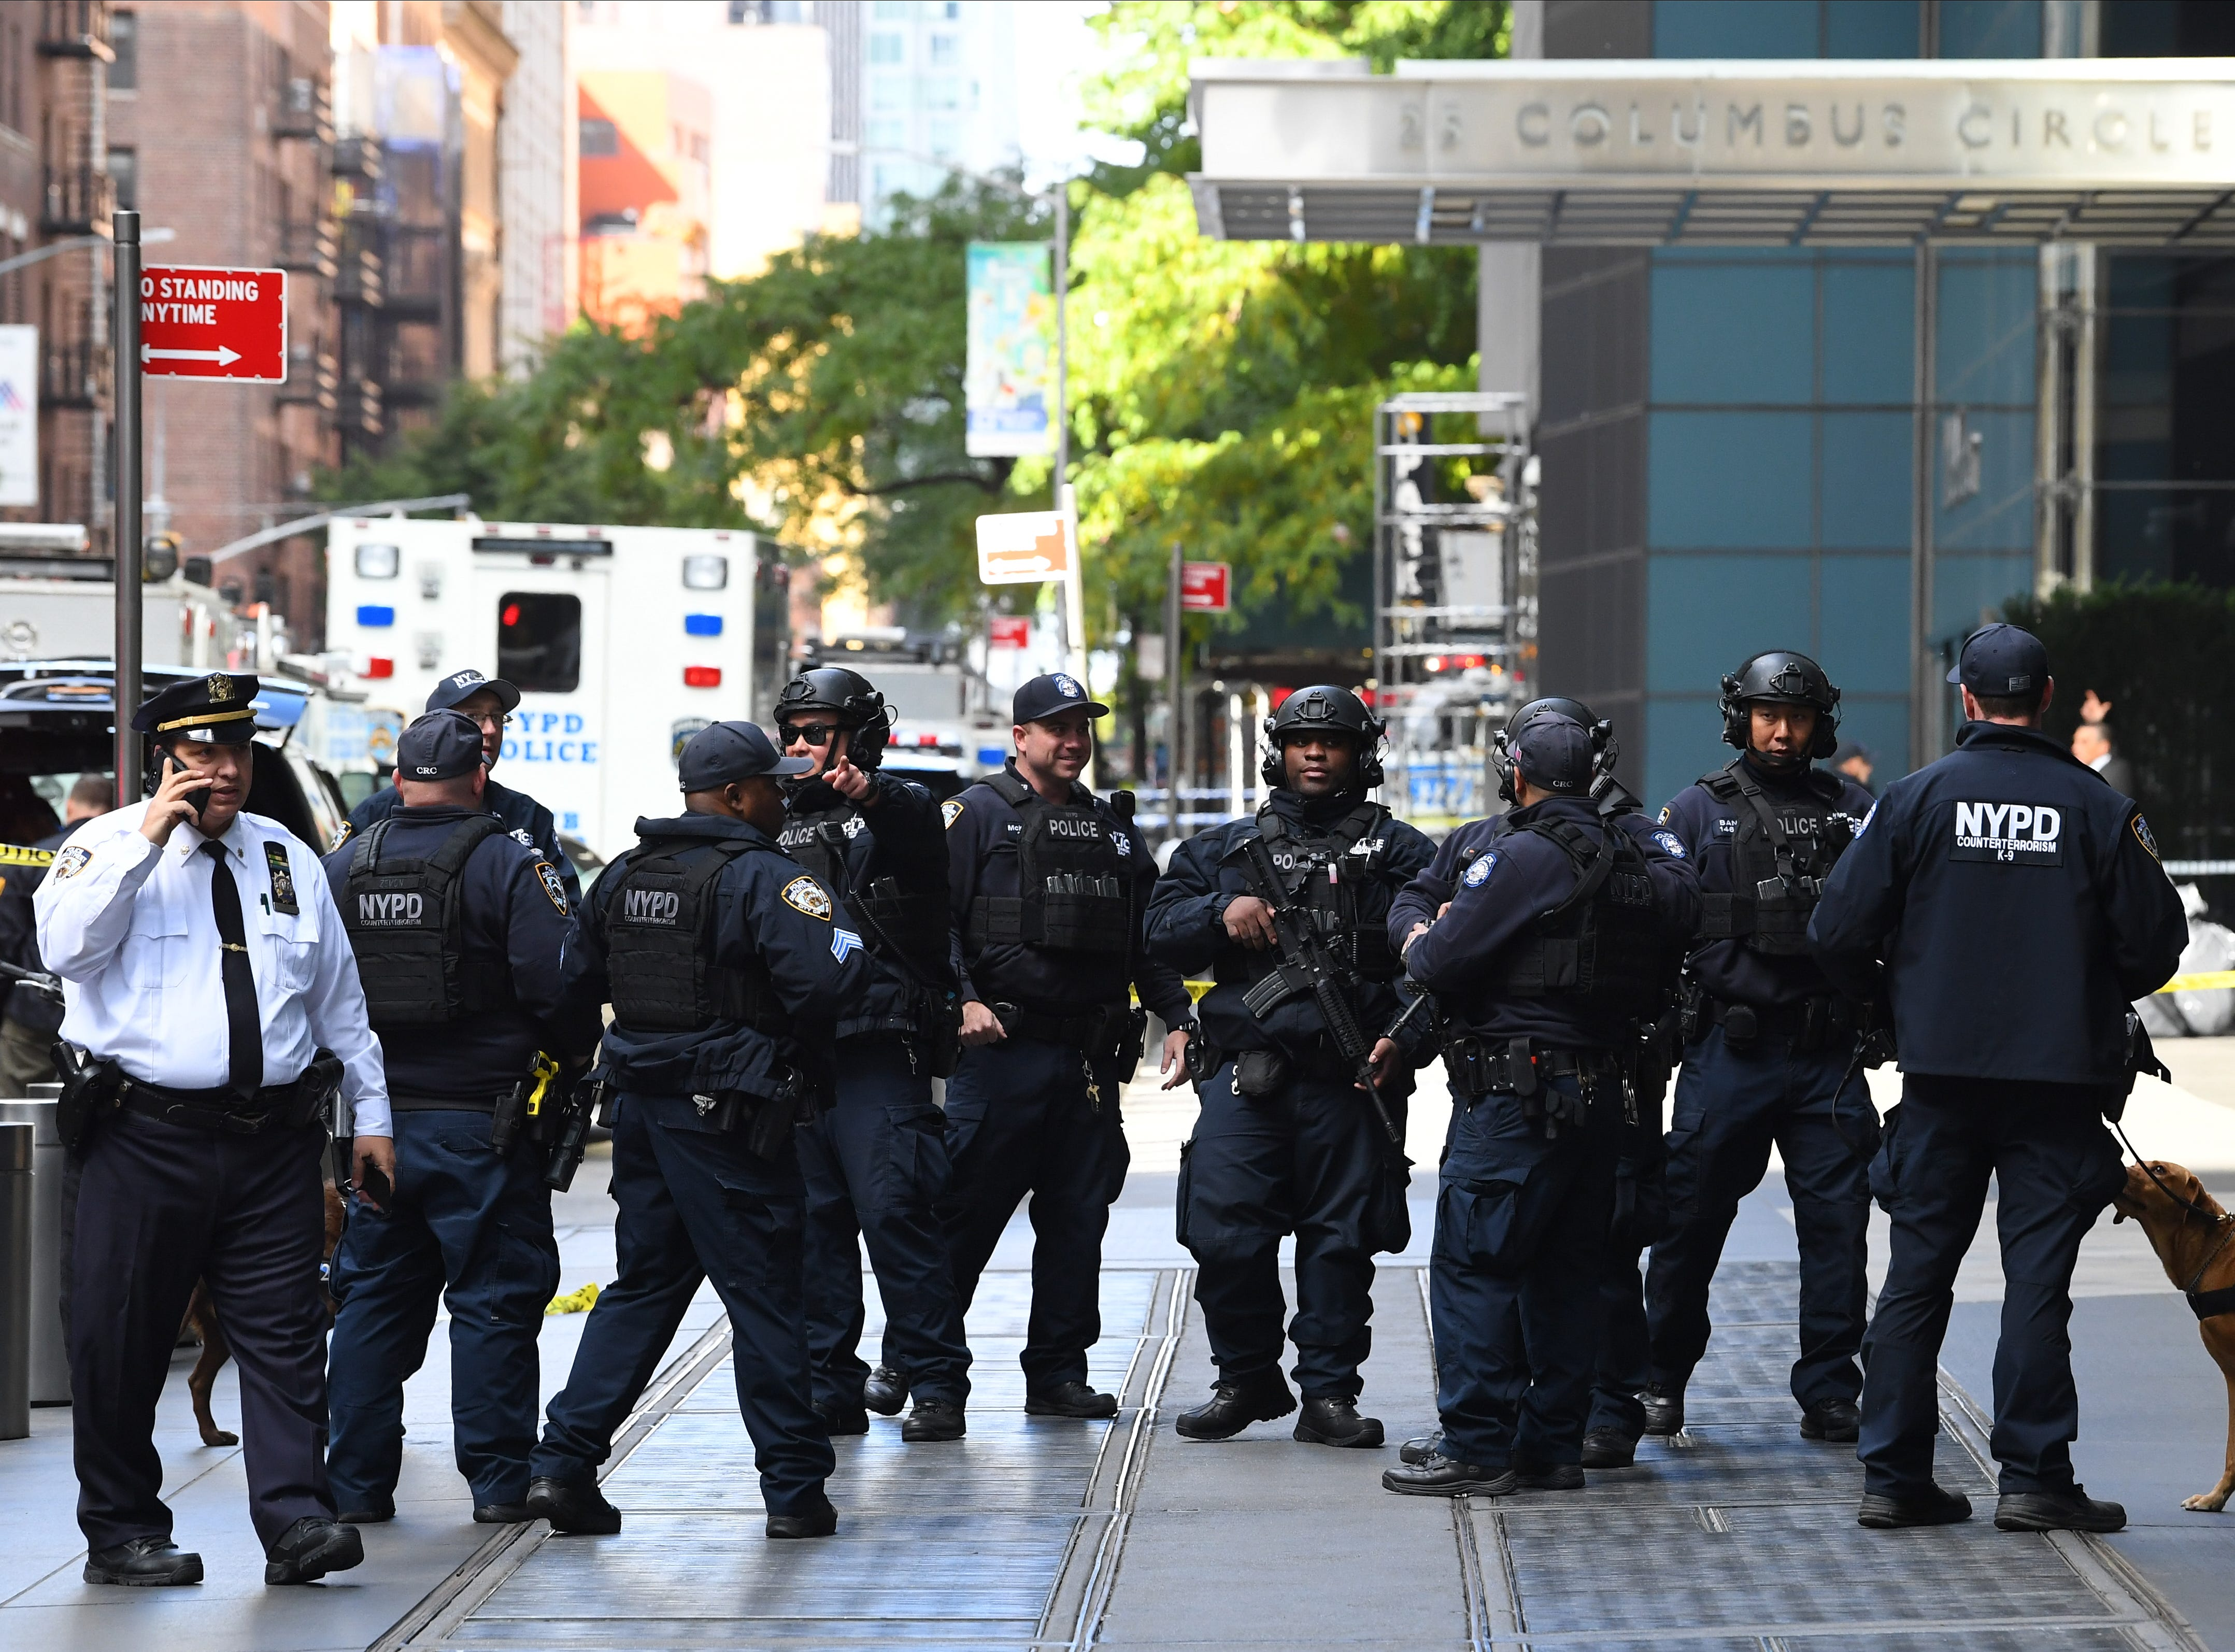 New York City Police Dept. officers gather outside the Time Warner Center, in New York, Oct. 24, 2018. A police bomb squad was sent to CNN's offices in New York City and the newsroom was evacuated because of a suspicious package.